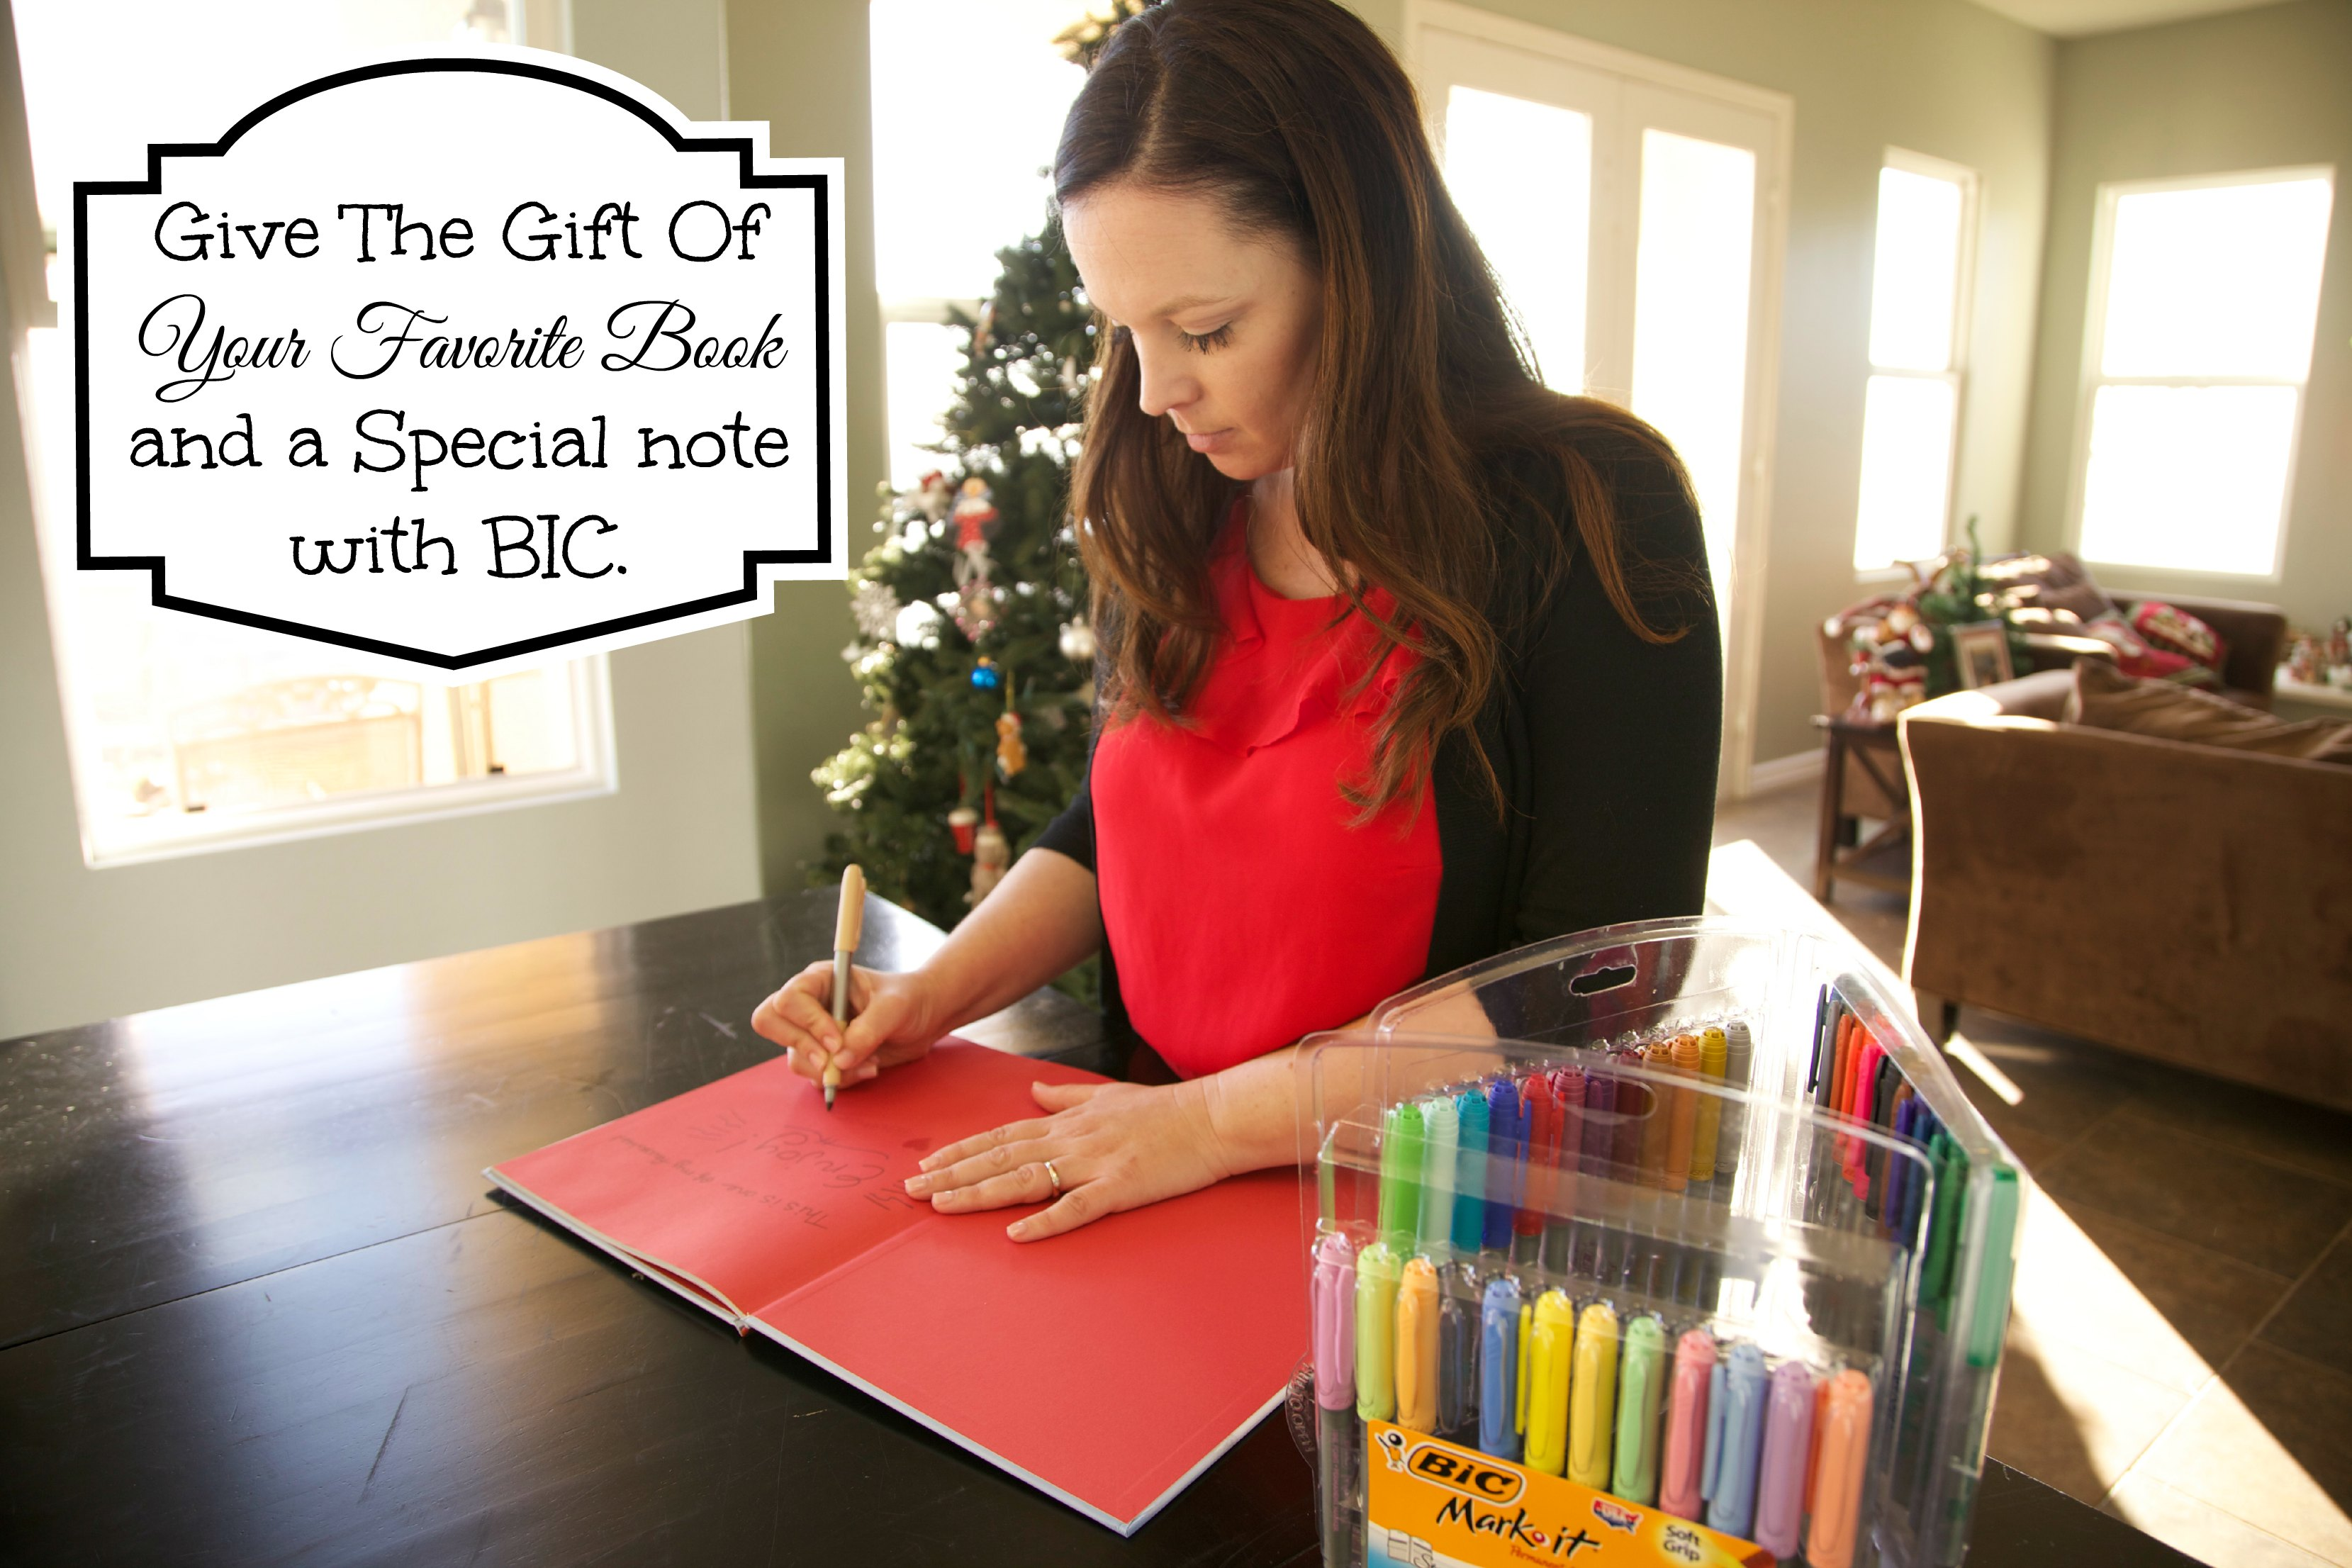 bIC to personalize a book